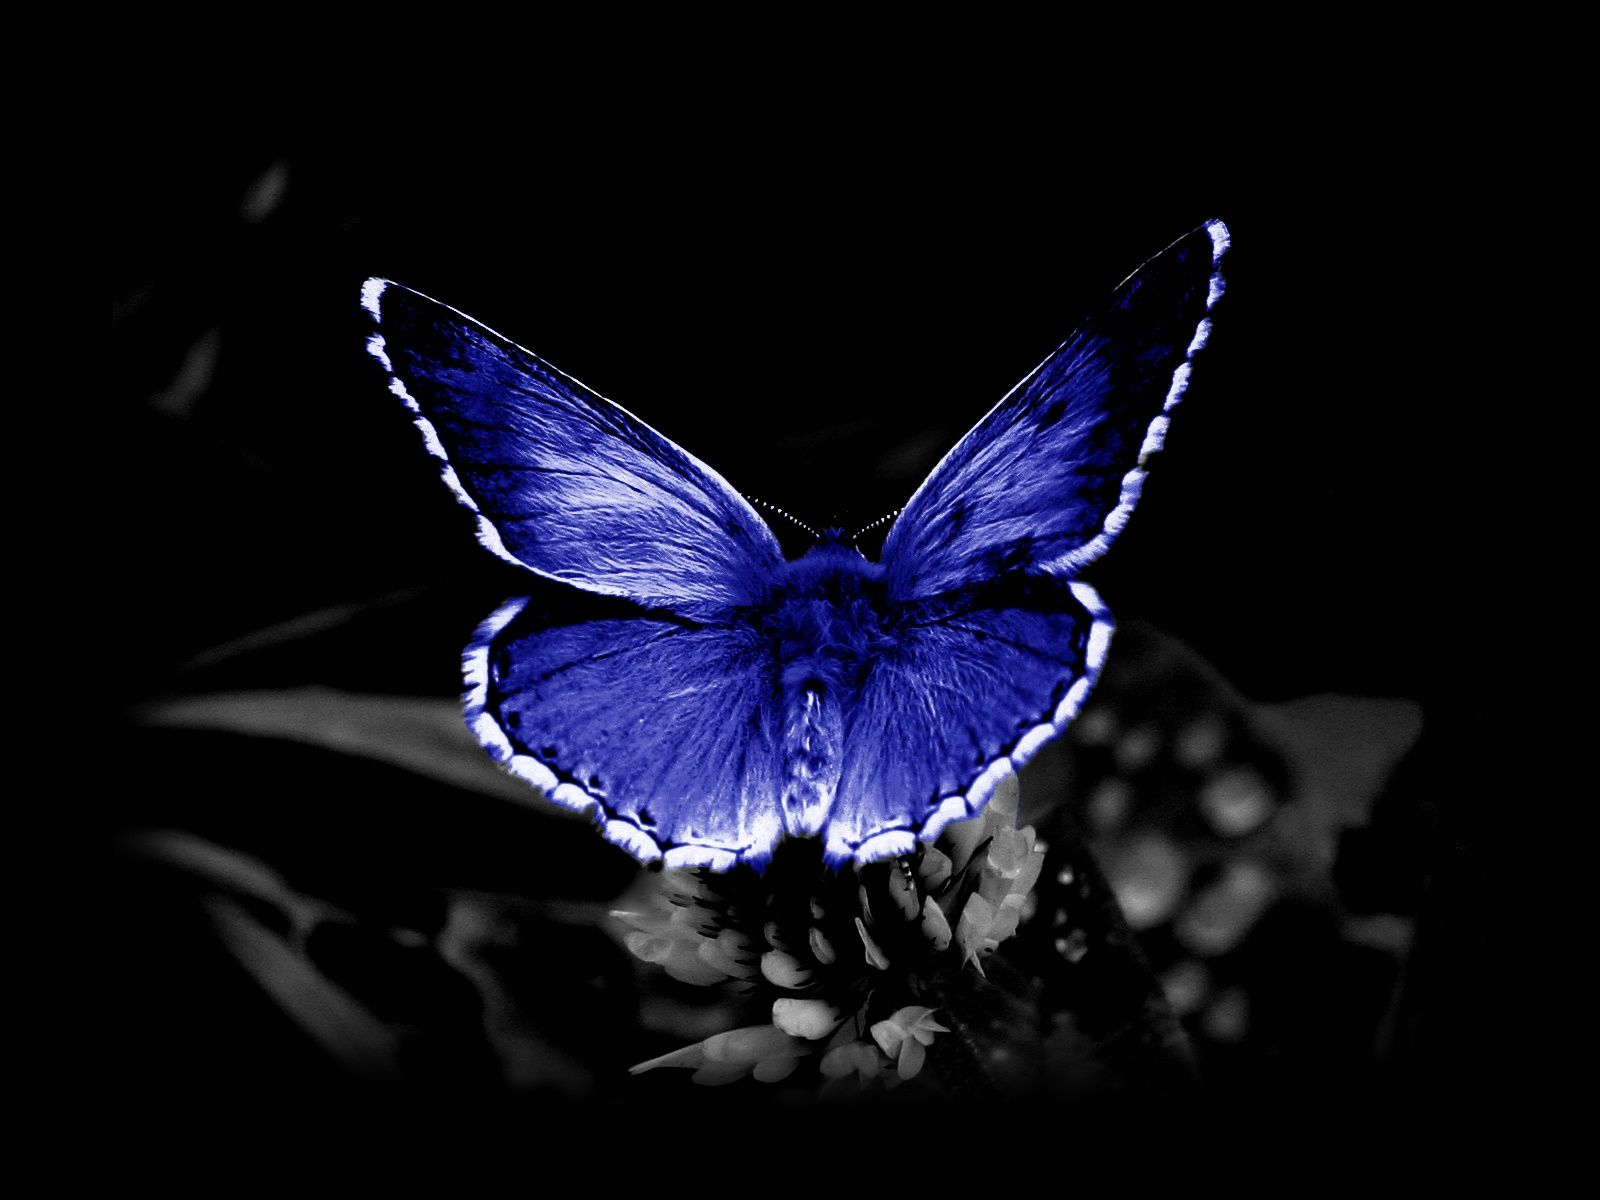 1080p Hd Butterfly Wallpaper Download High Quality - High Resolution Black And White , HD Wallpaper & Backgrounds